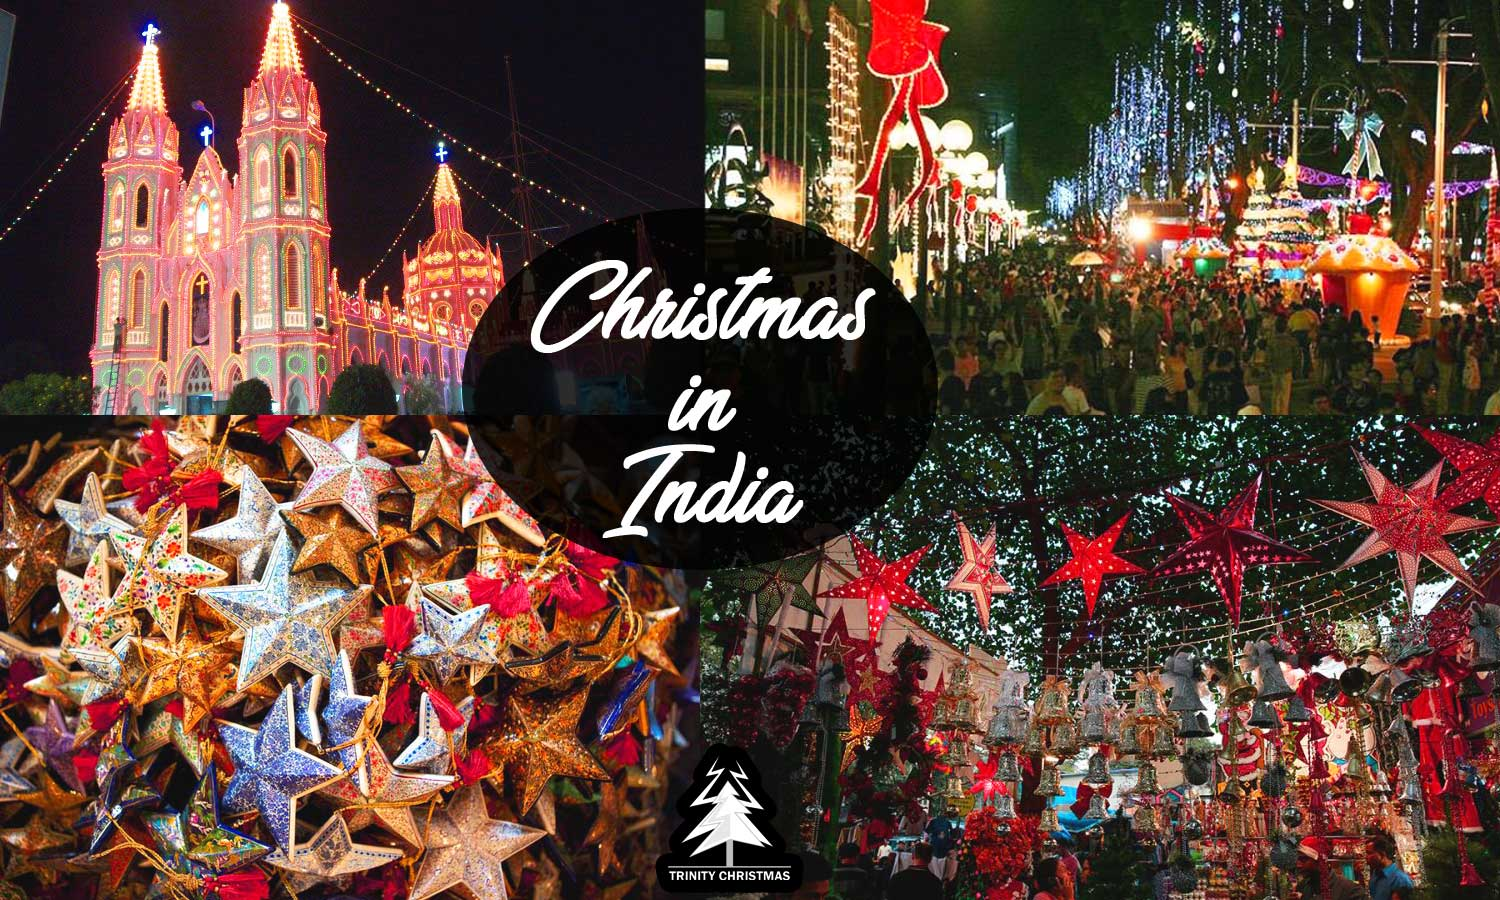 How Christmas is Celebrated in India - Trinity Christmas